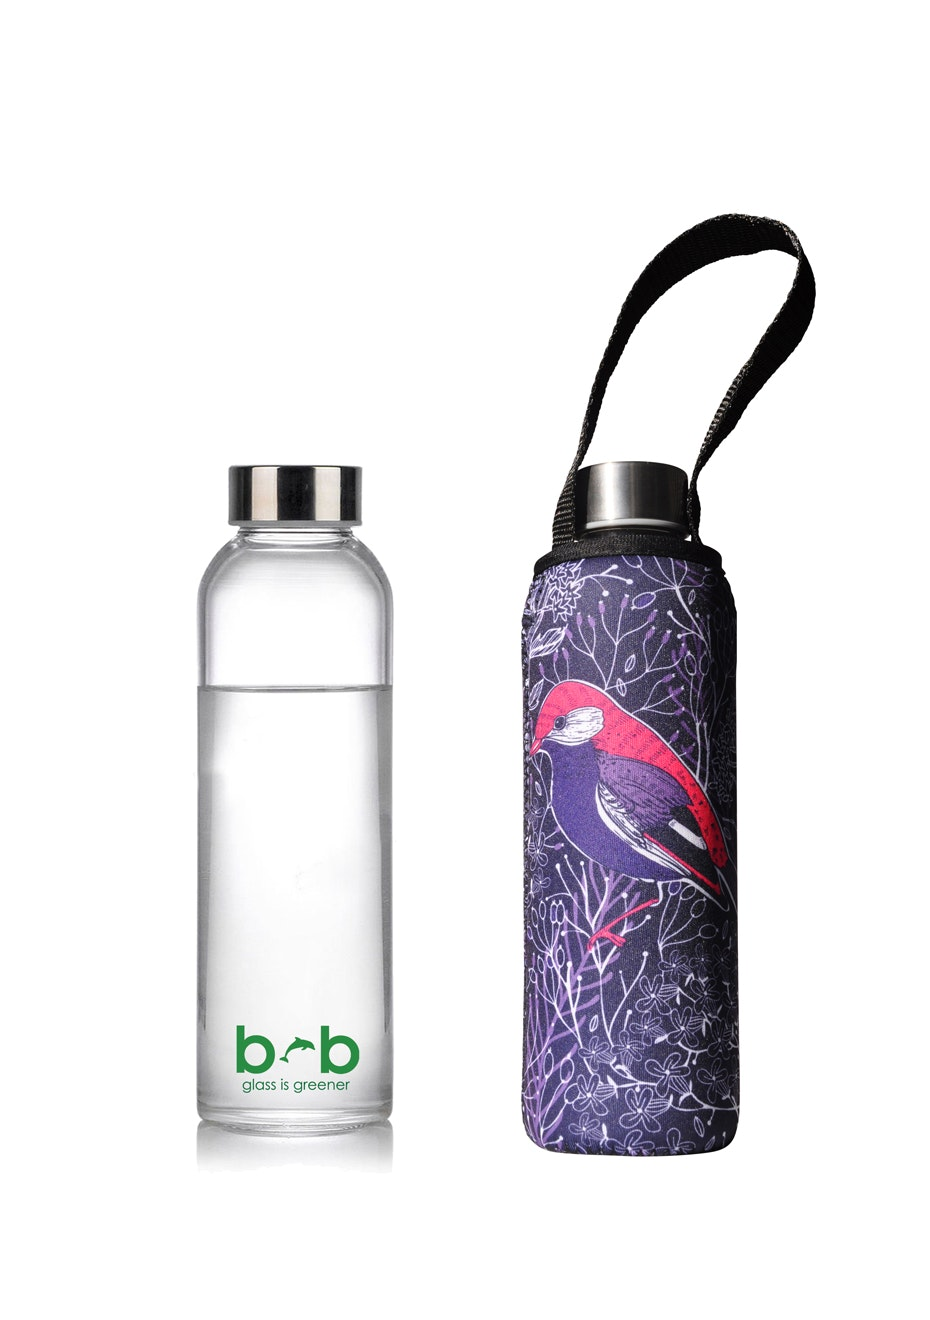 BBBYO - Glass Is Greener Bottle 570 ml + Carry Cover (Chirp Print) - 570 ml